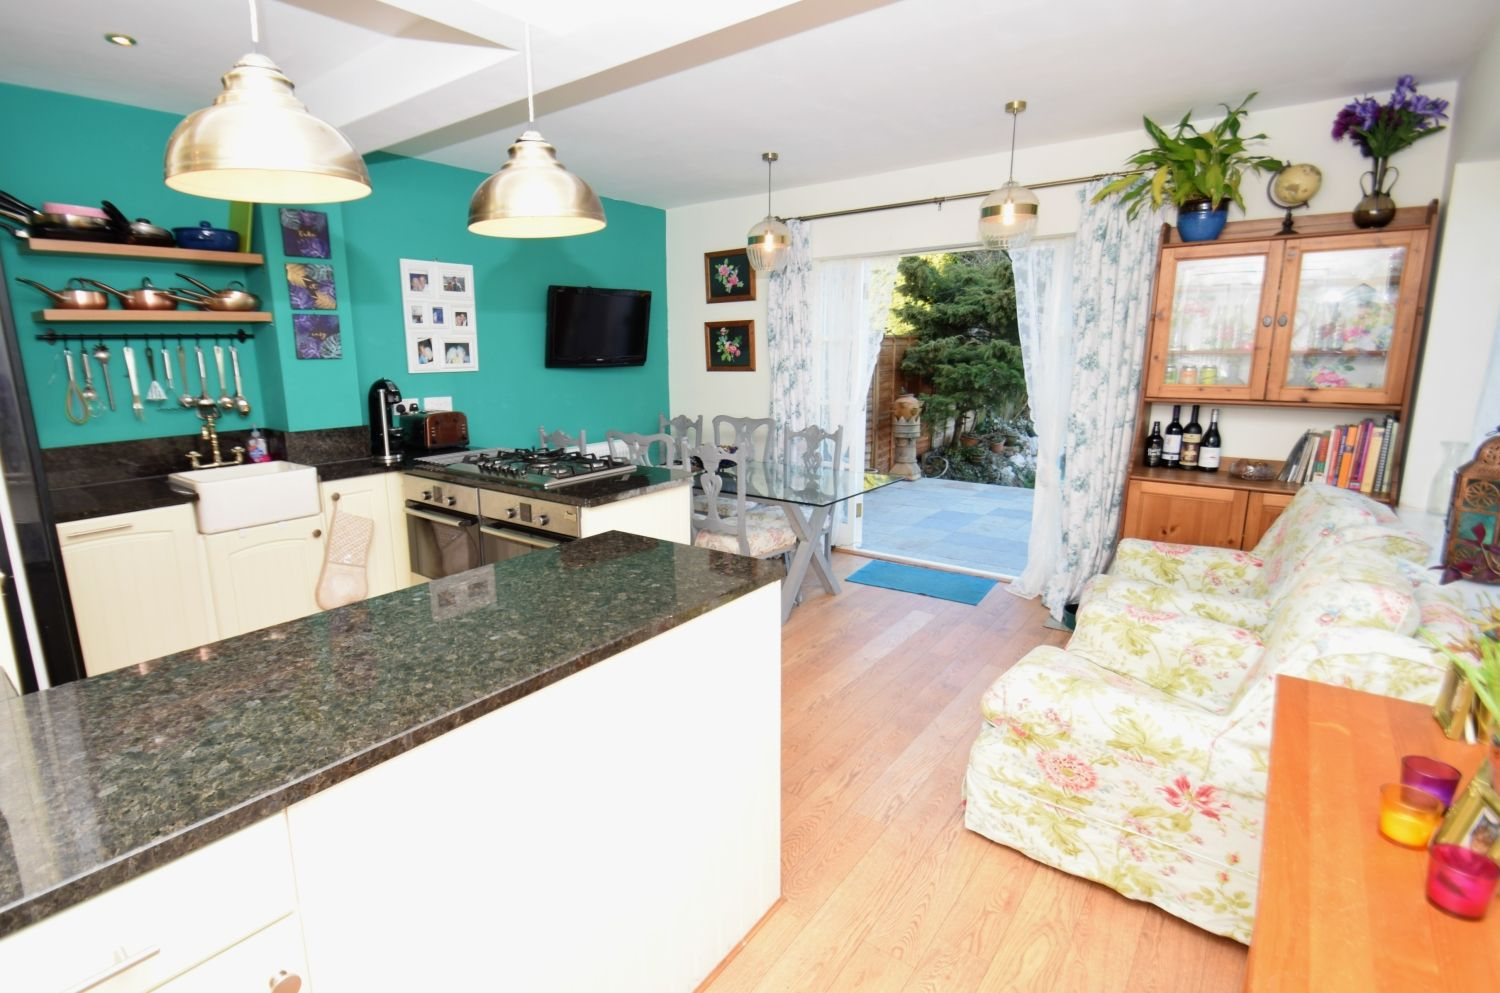 4 bed semi-detached for sale in Upland Grove, Bromsgrove, B61  - Property Image 9